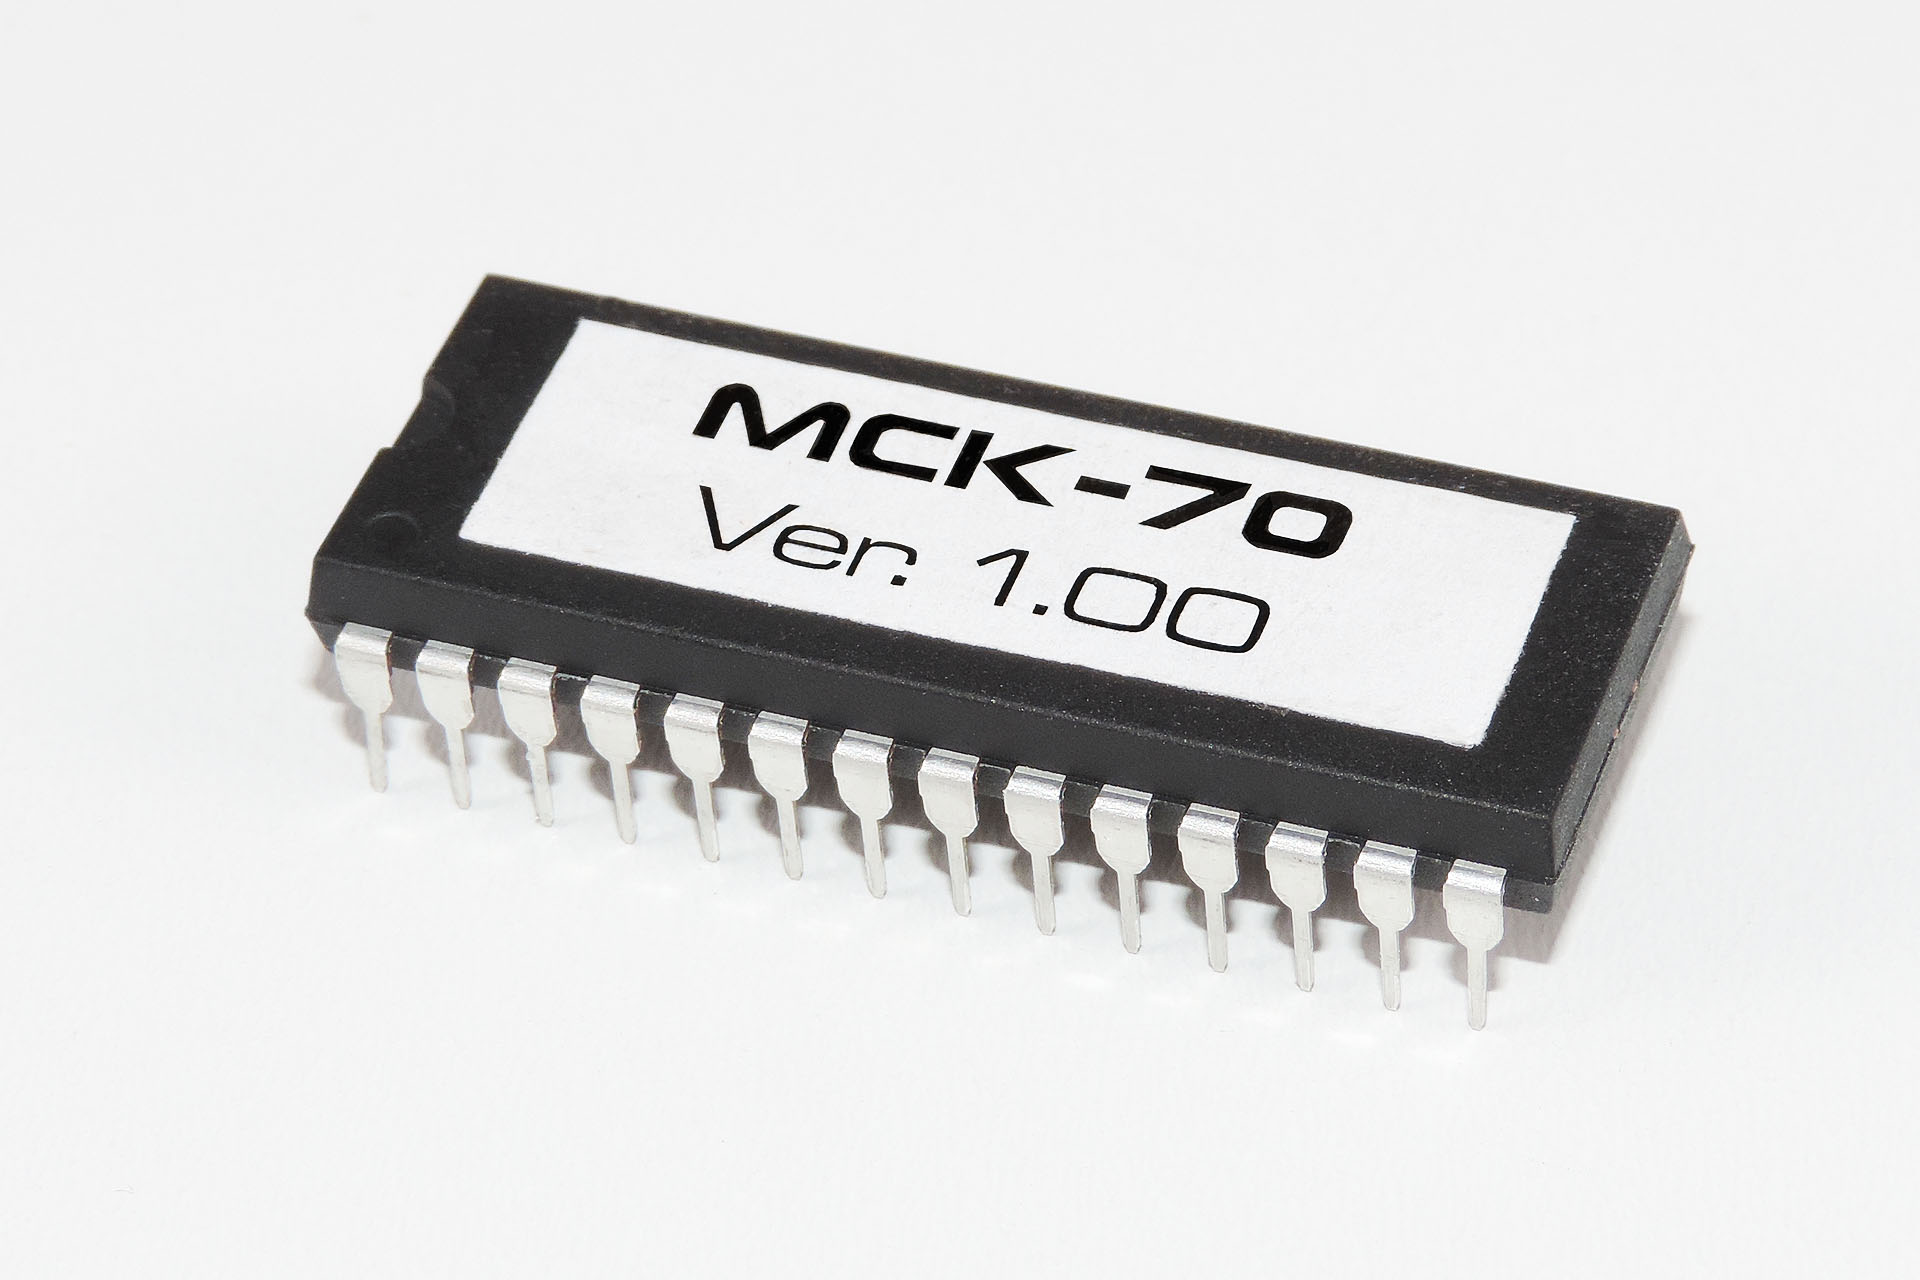 MCK-70 Memory Checker for the Roland MKS-70 and JX-10.